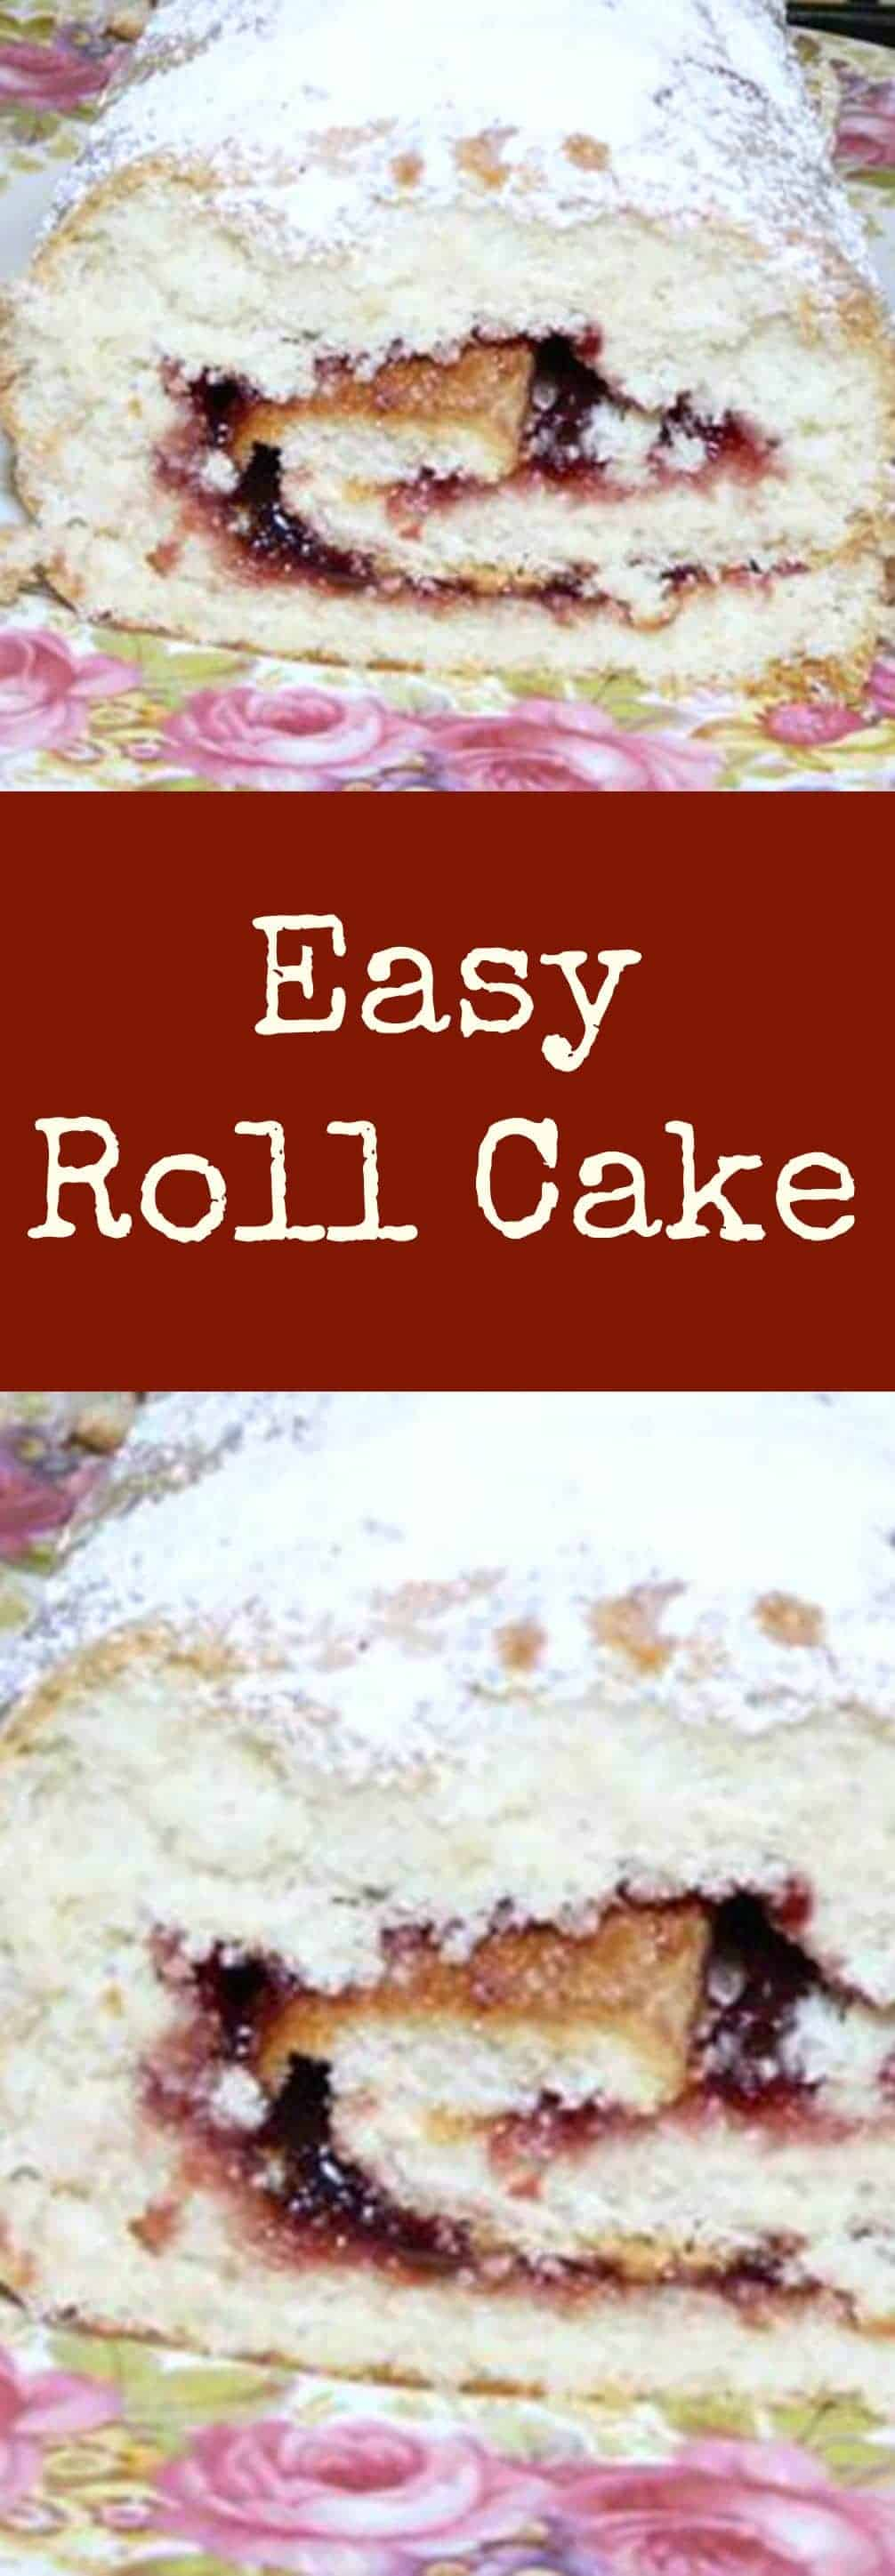 Easy Roll Cake. A very quick and easy recipe, fill the roll with what you like, jam, whipped cream, or frosting! Even fresh berries too. Yum!